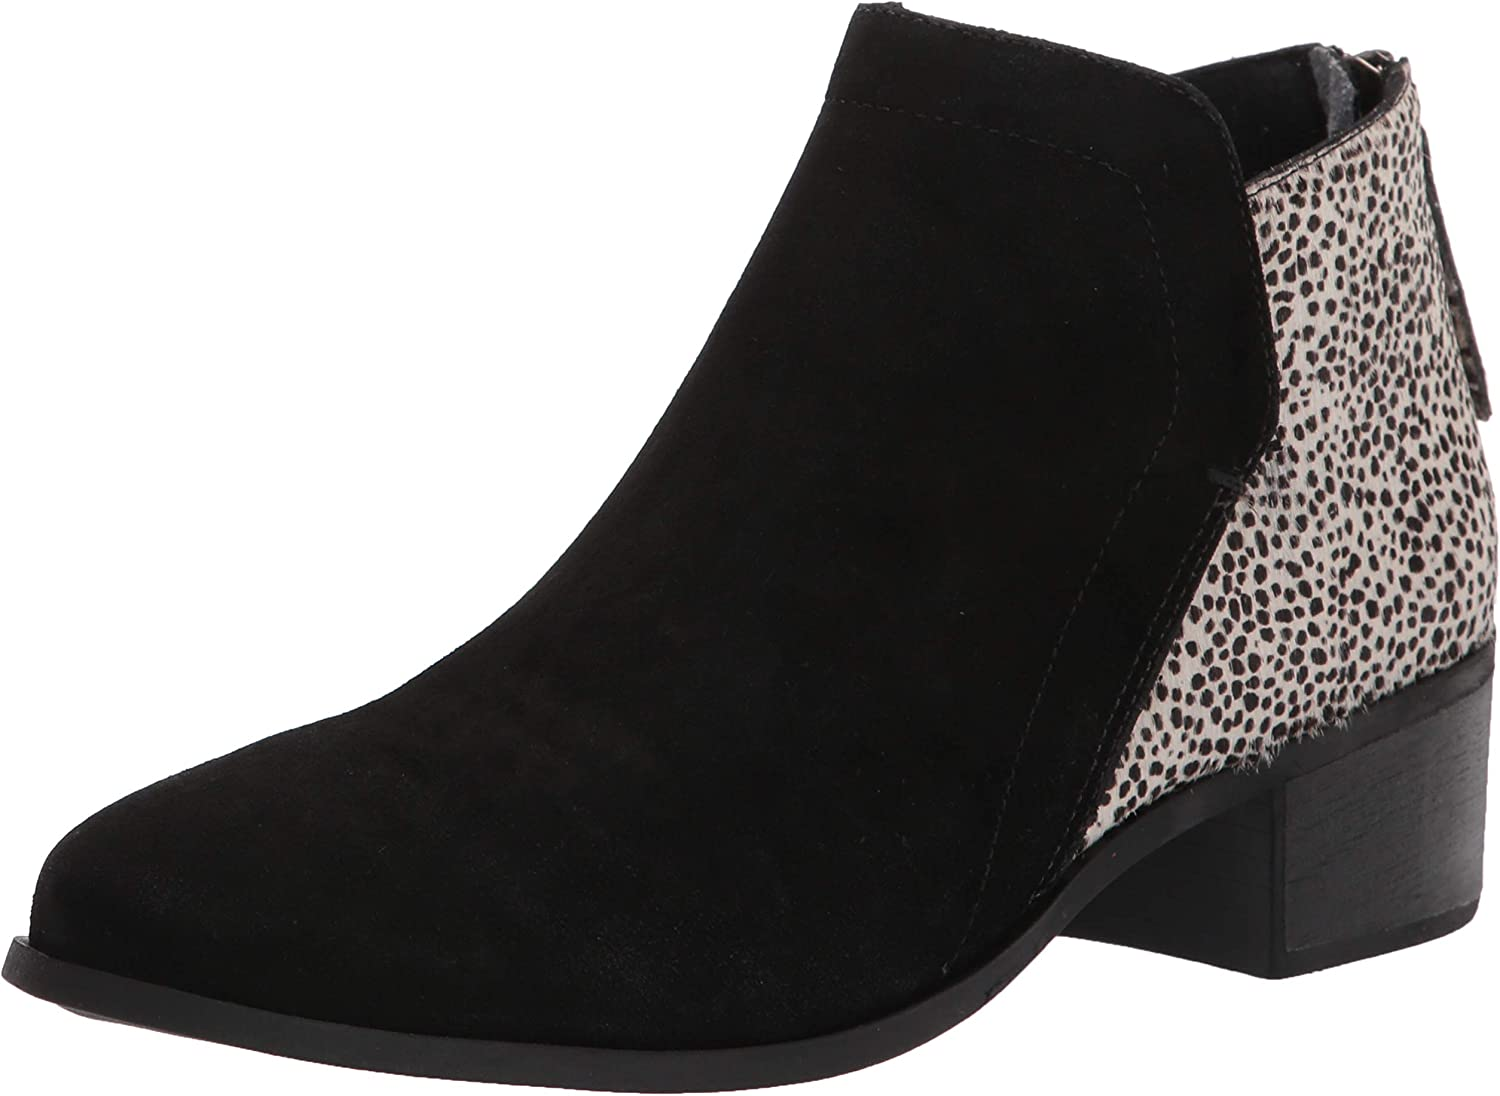 Matisse Seattle Mall Women's Bootie Ankle Sale SALE% OFF Boot